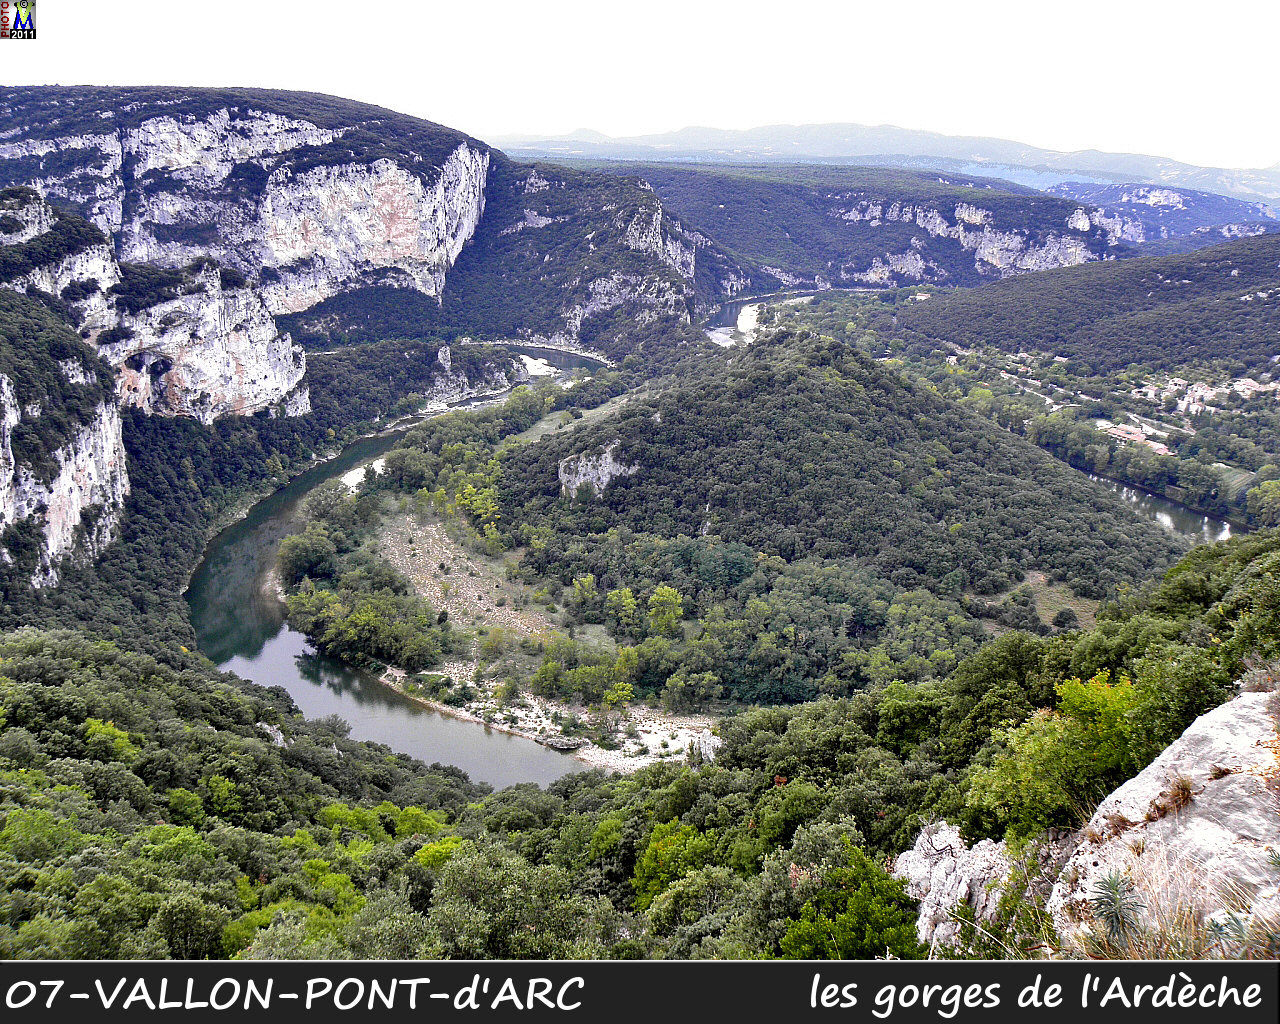 07VALLON-PONT-ARC_gorges_132.jpg